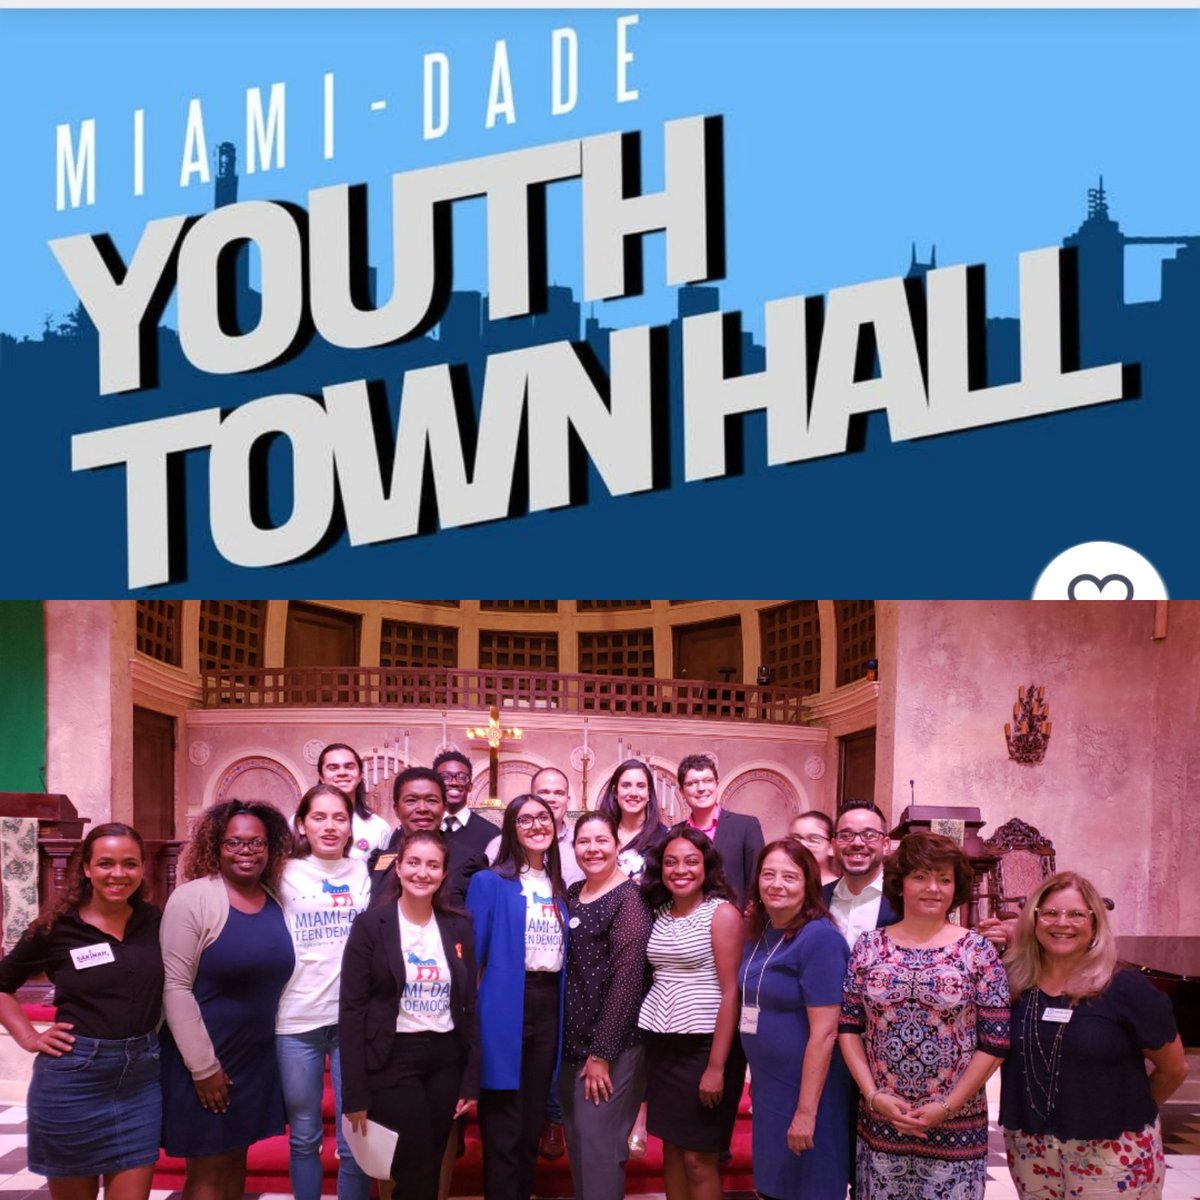 #TeamDotie is proud of the Miami-Dade Teens for putting on a spectacular Youth Town Hall, replete with voter registration and opportunities to sign up with various organization working on youth related issues. 👏🏾👏🏾👏🏾